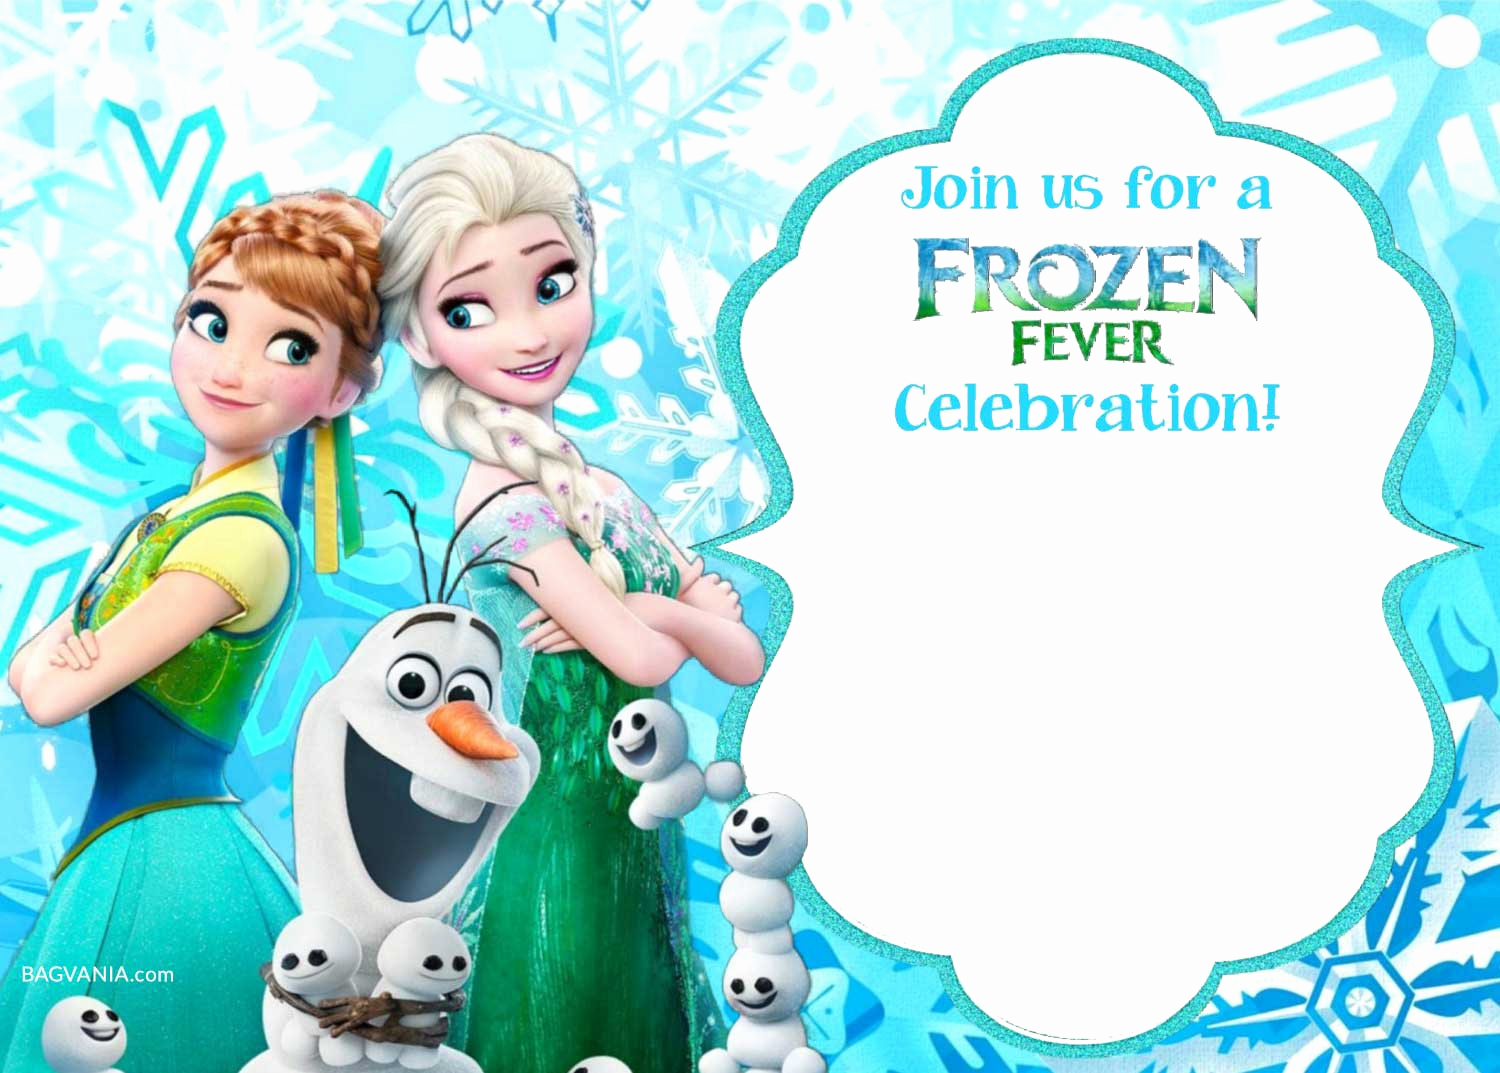 Free Printable Frozen Invitation Templates Fresh Free Printable Frozen Invitation Templates – Bagvania Free